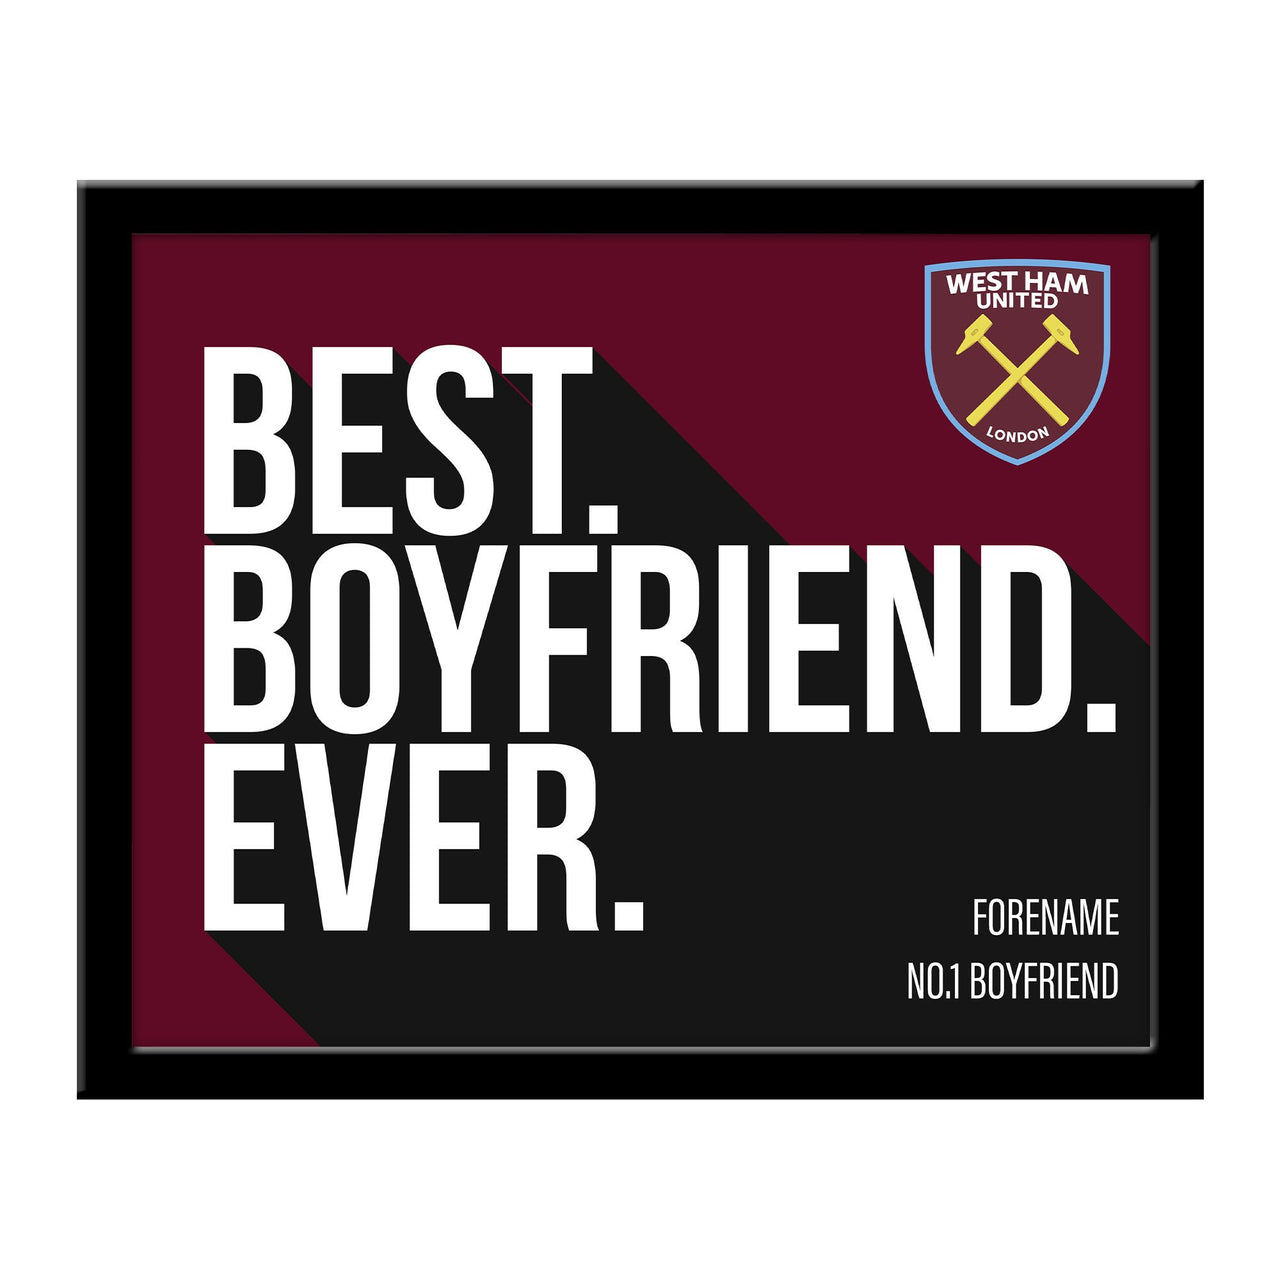 West Ham United Best Boyfriend Ever 10 x 8 Photo Framed